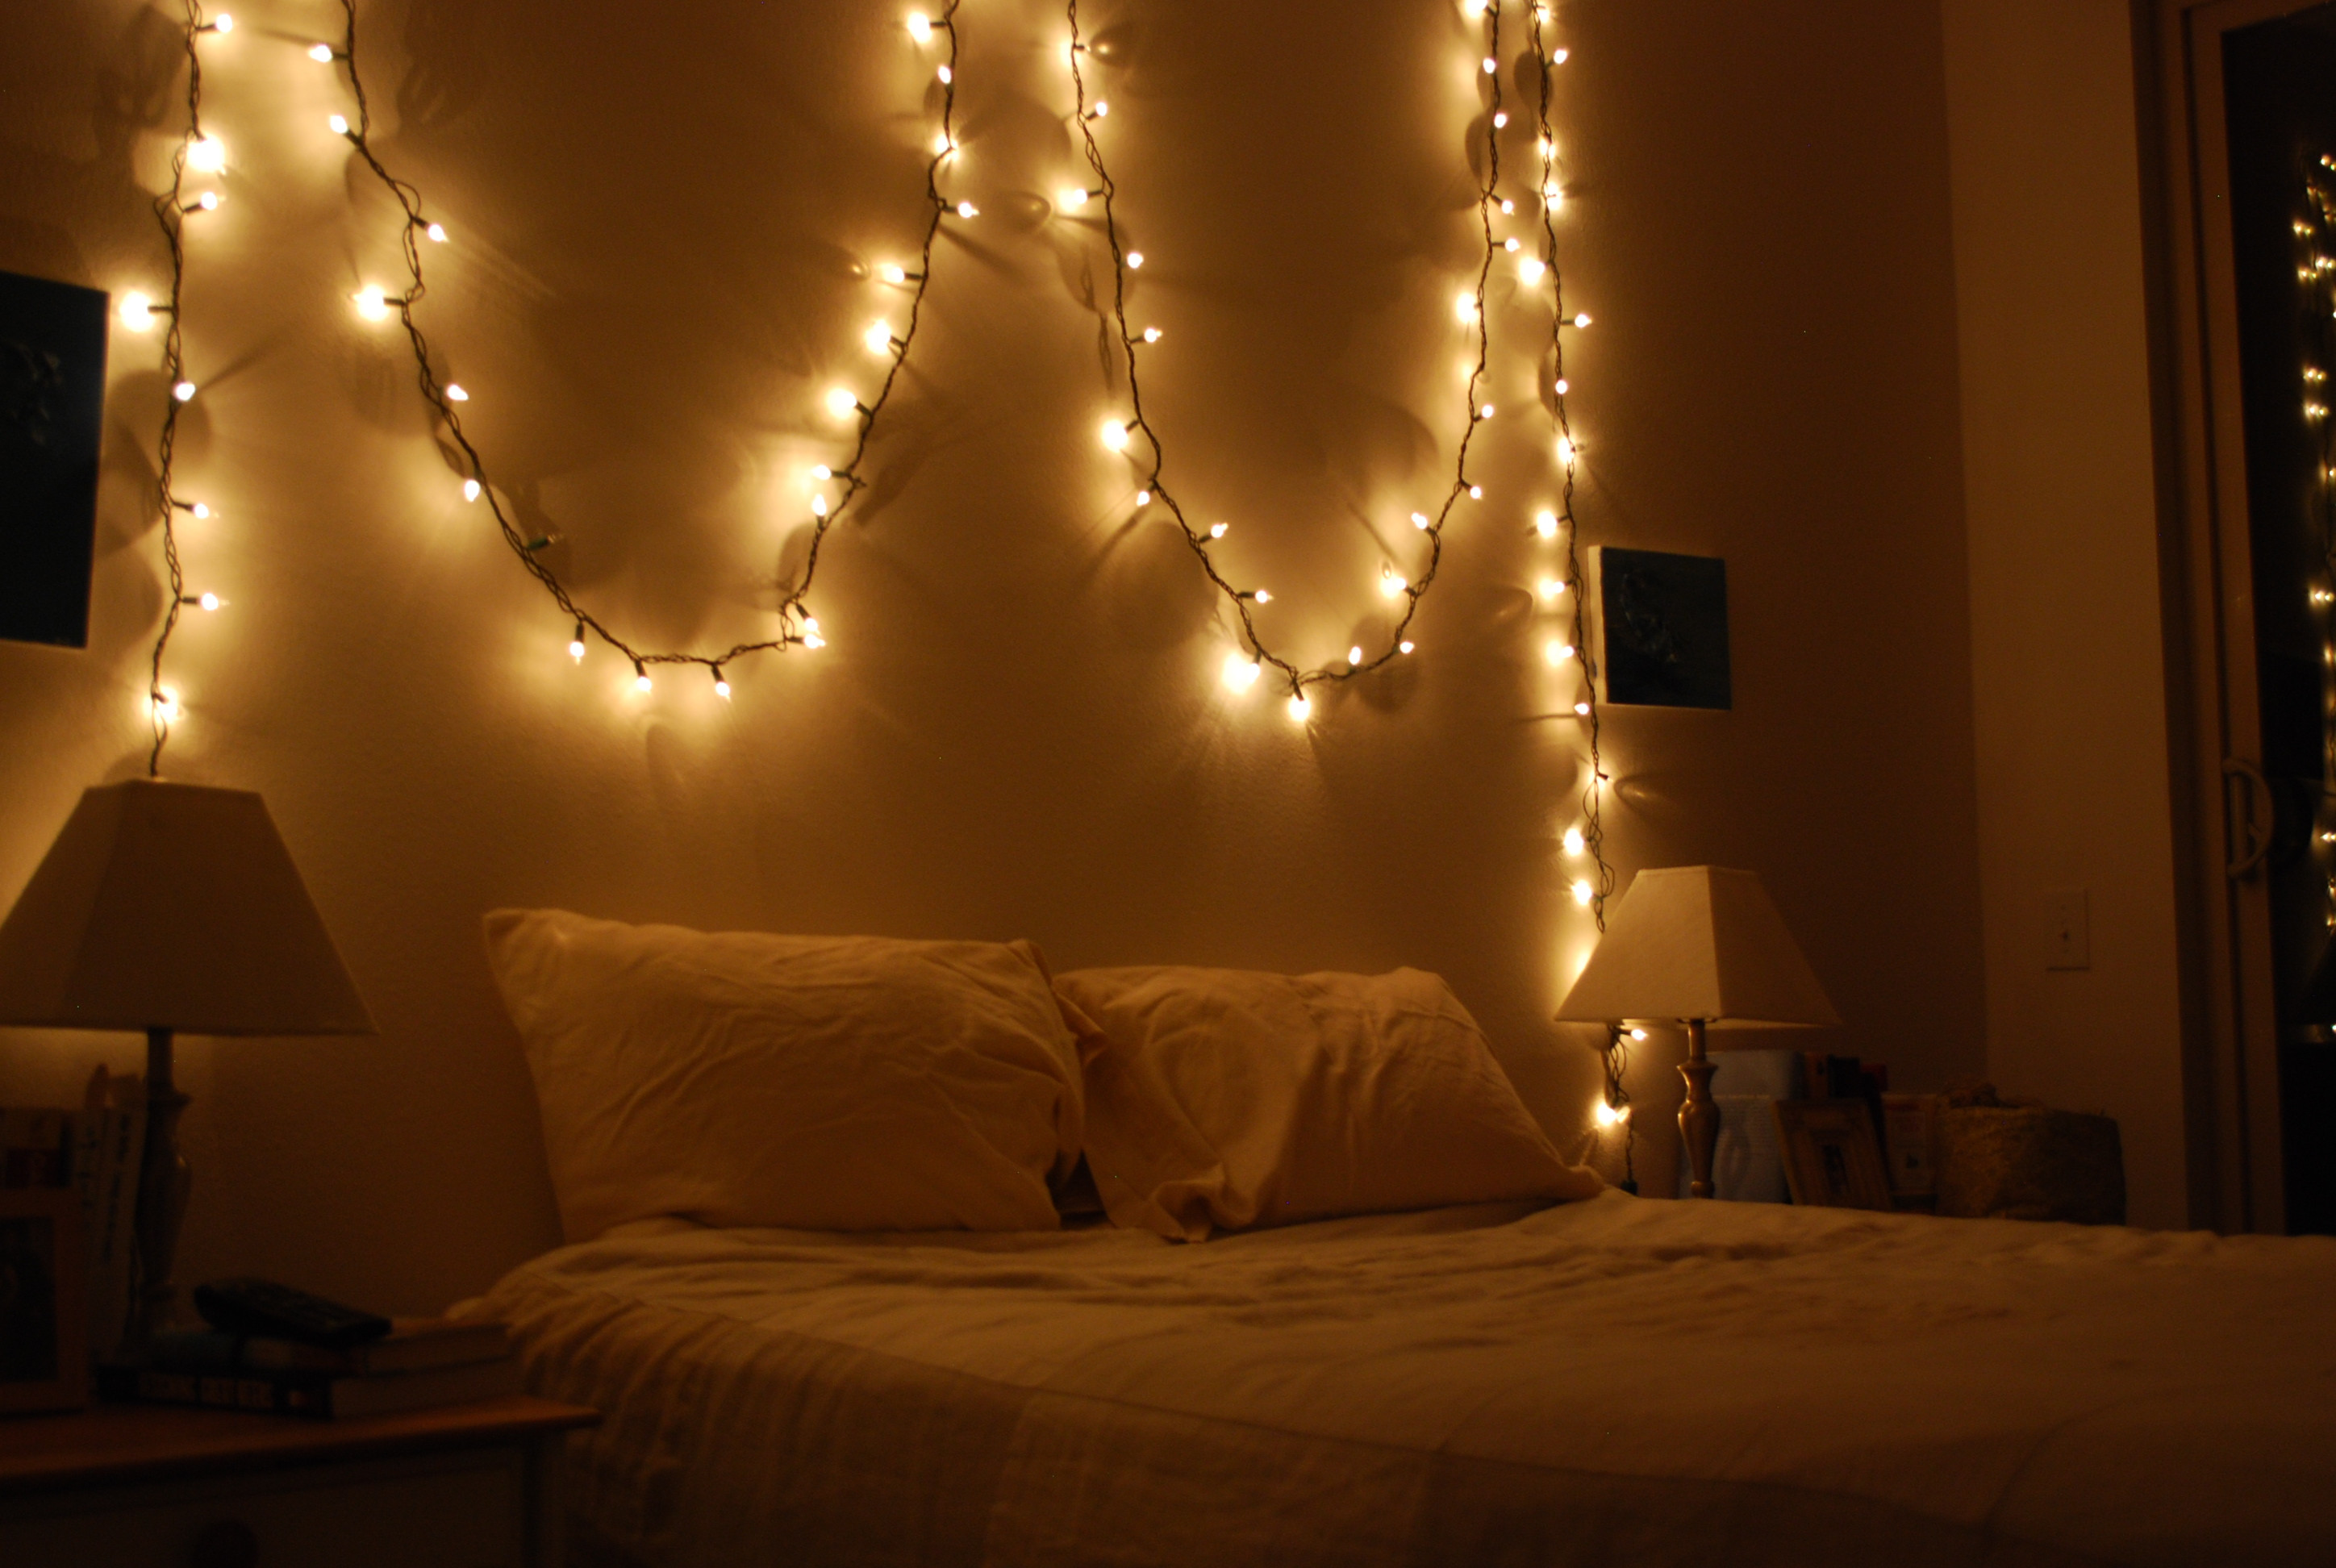 Christmas Lights In Bedroom  1000 images about Bedroom on Pinterest